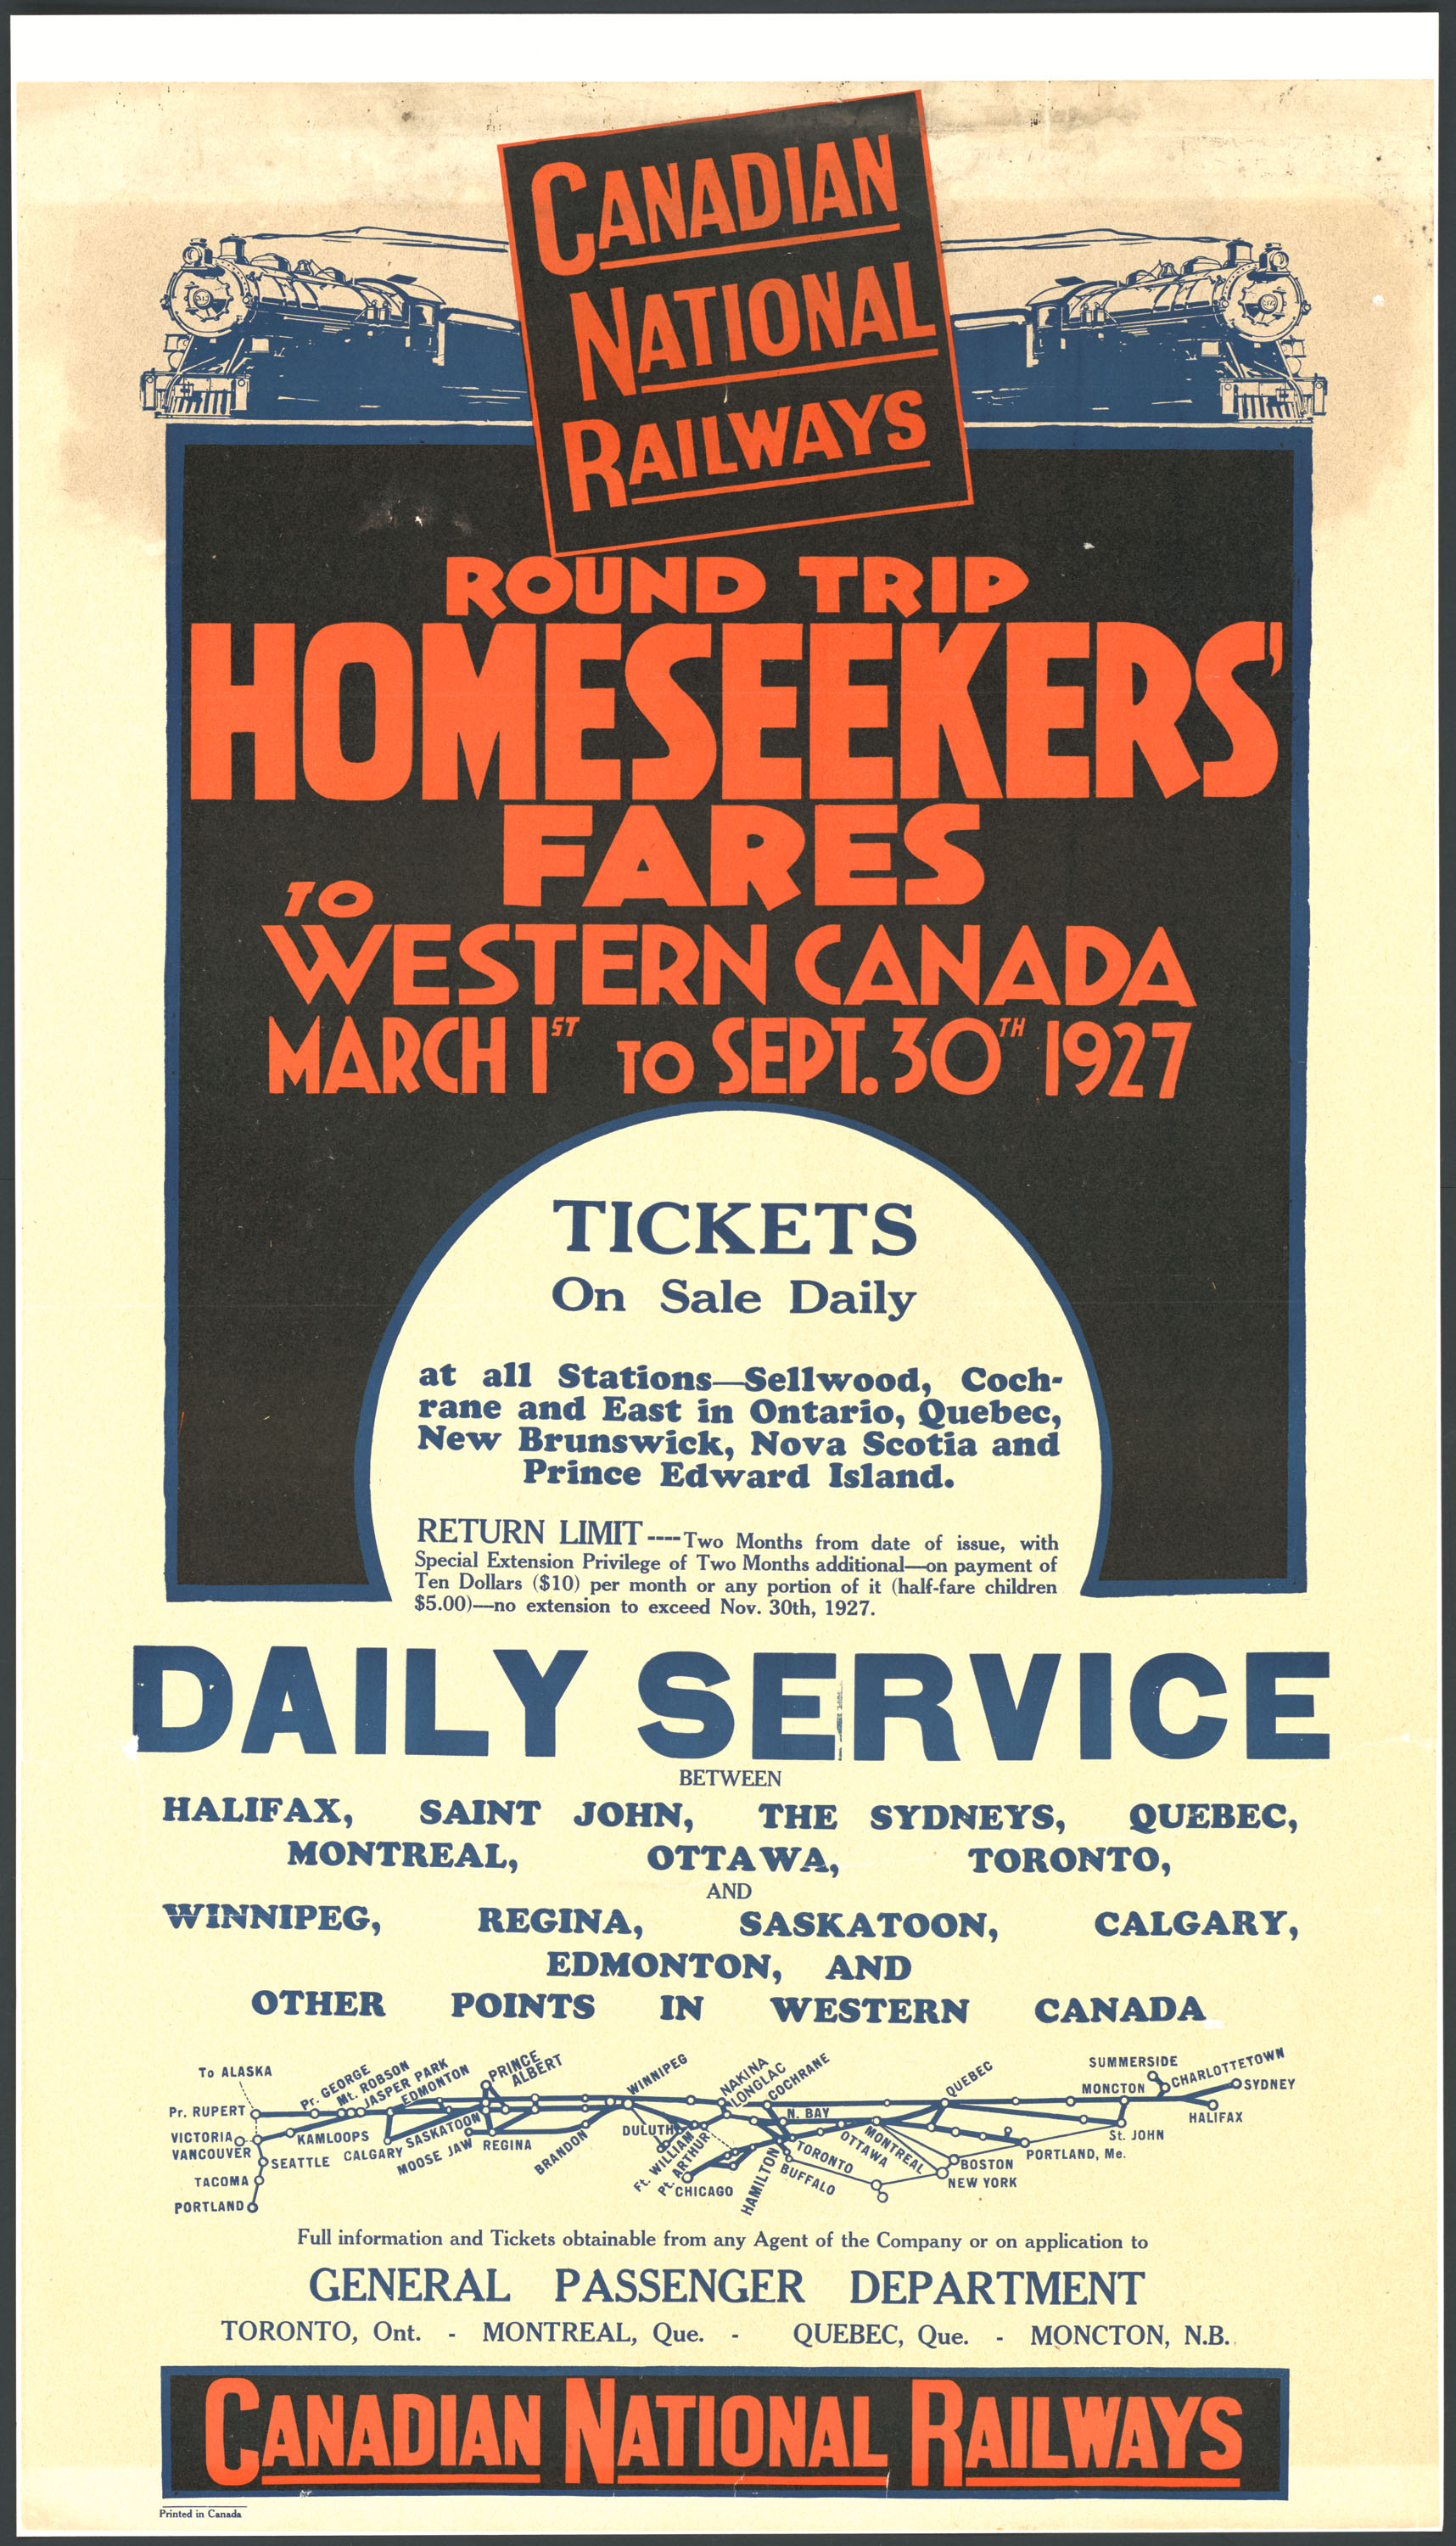 Canadian National Railways – Round Trip Homeseekers' Fares to Western Canada – 1927 (5135798)